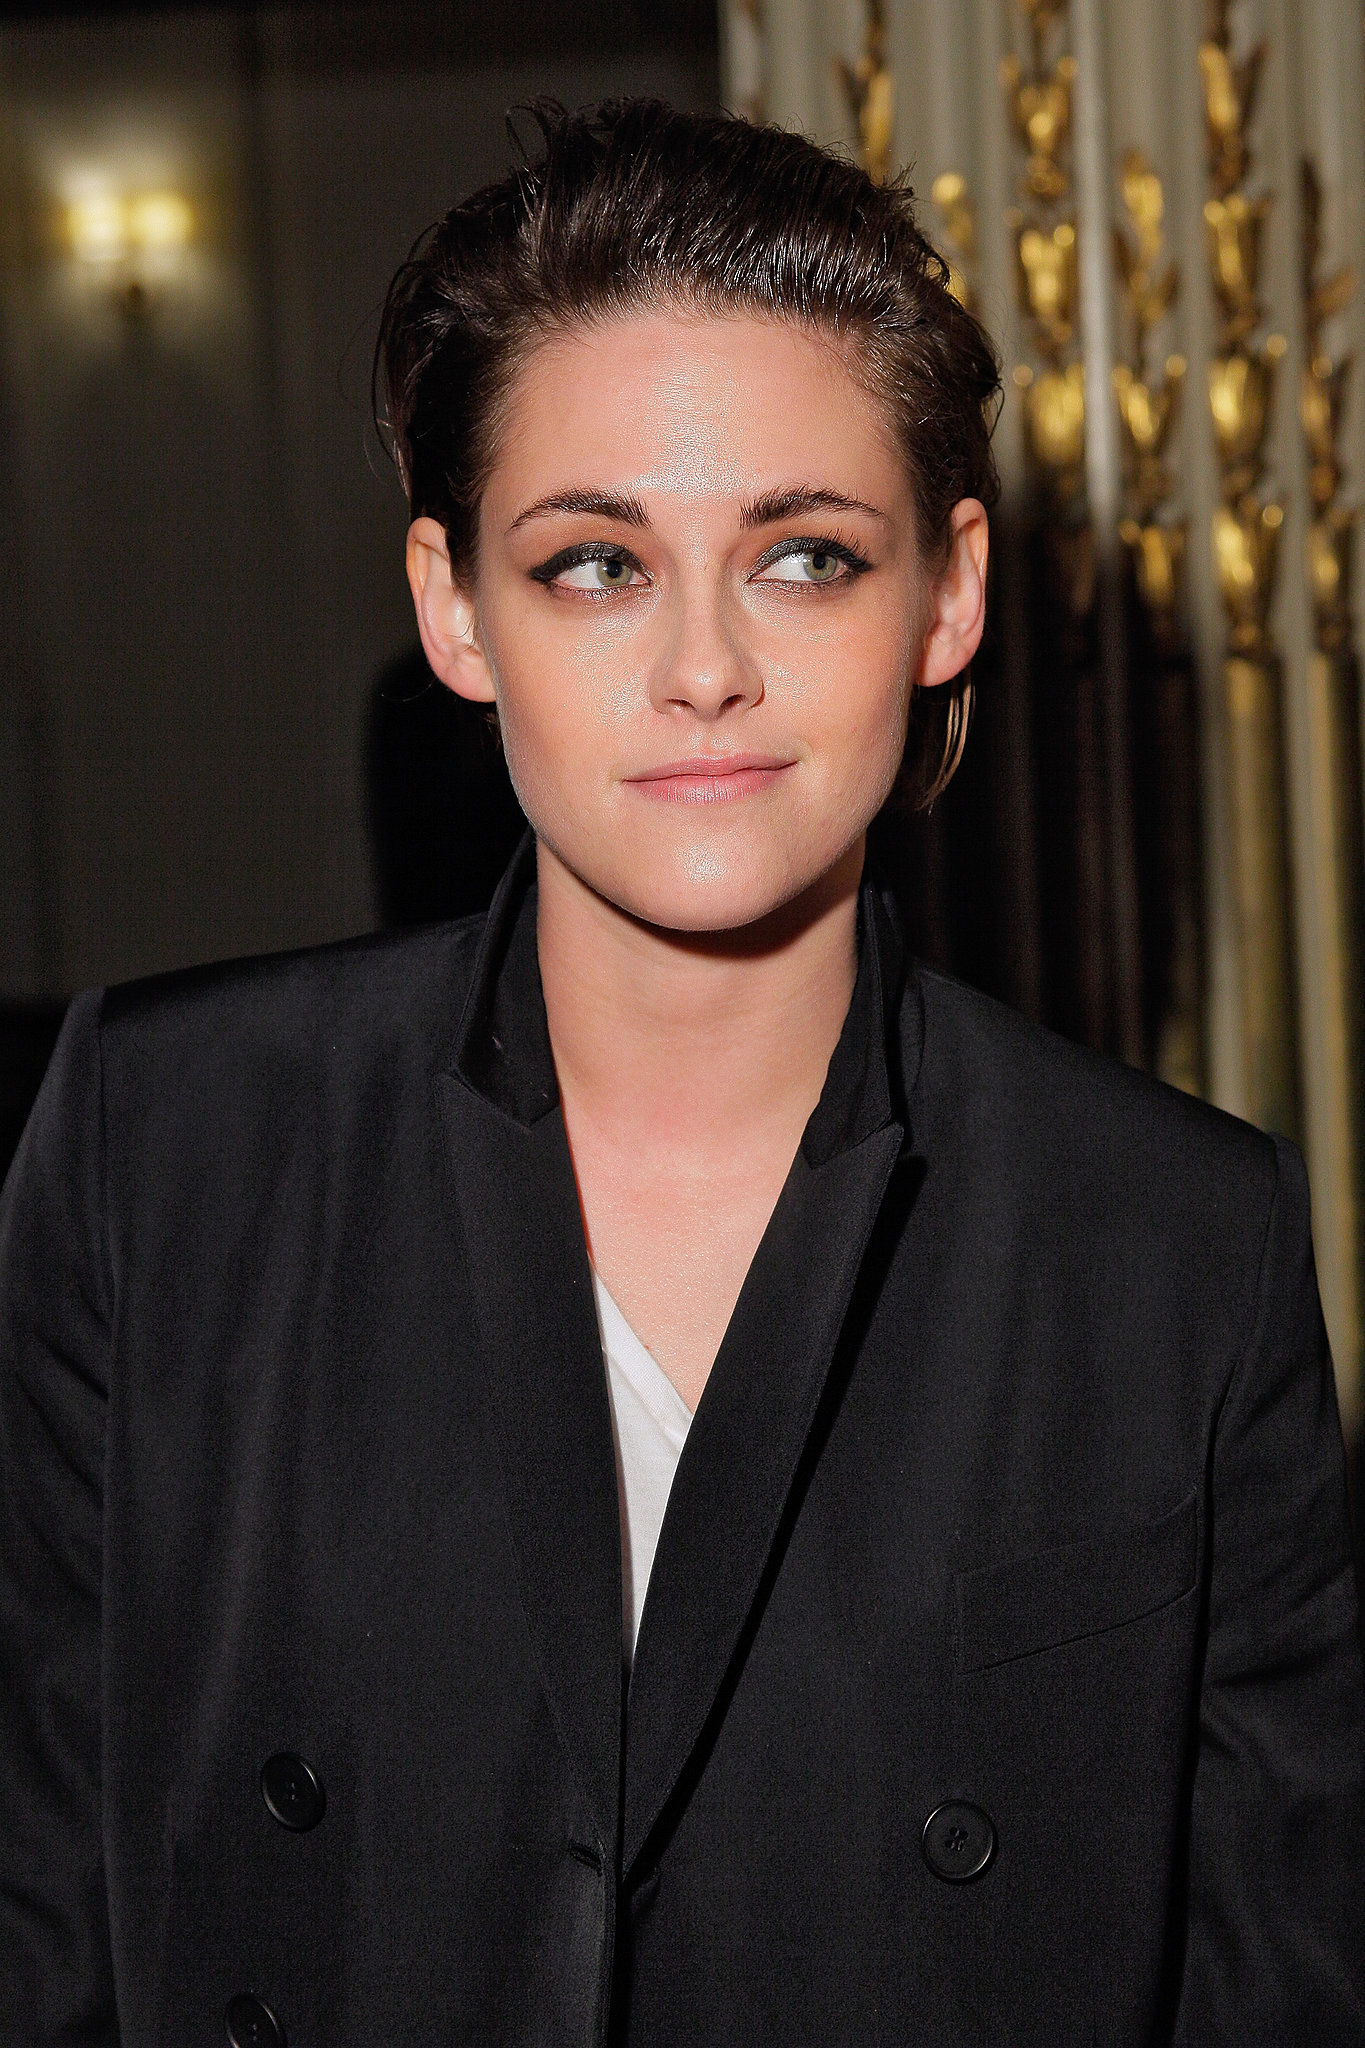 Kristen Stewart's Latest Interview Is Filled With All Sorts of Gems Kristen Stewart